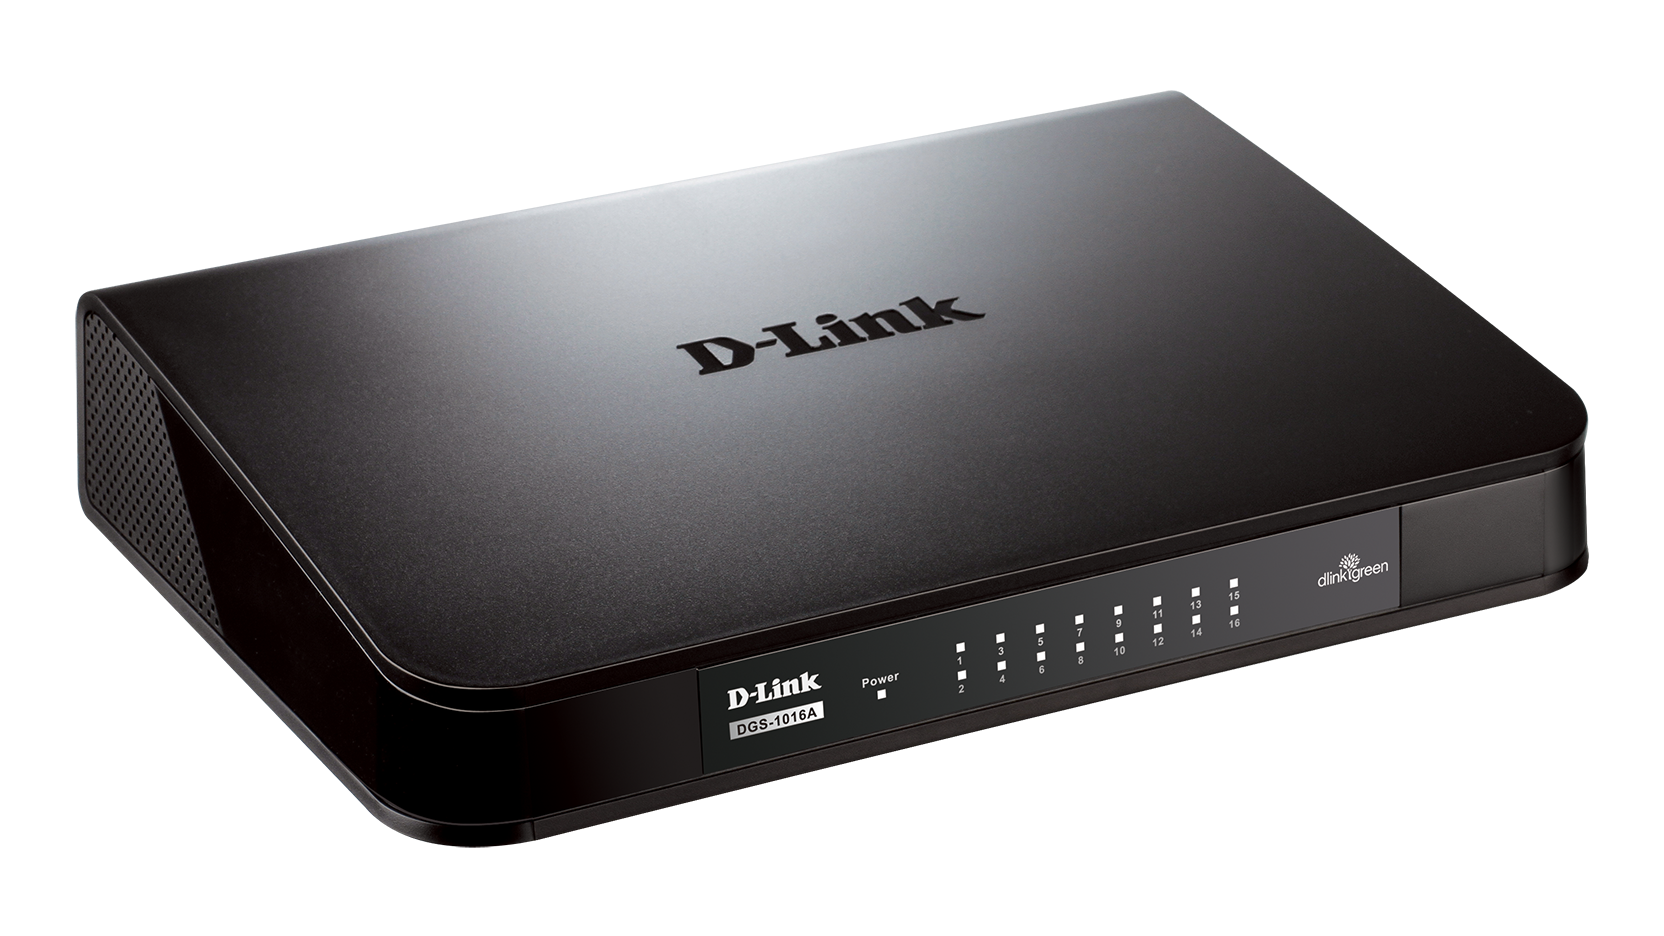 SWITCH 16-Port Gigabit D-Link DGS-1016A